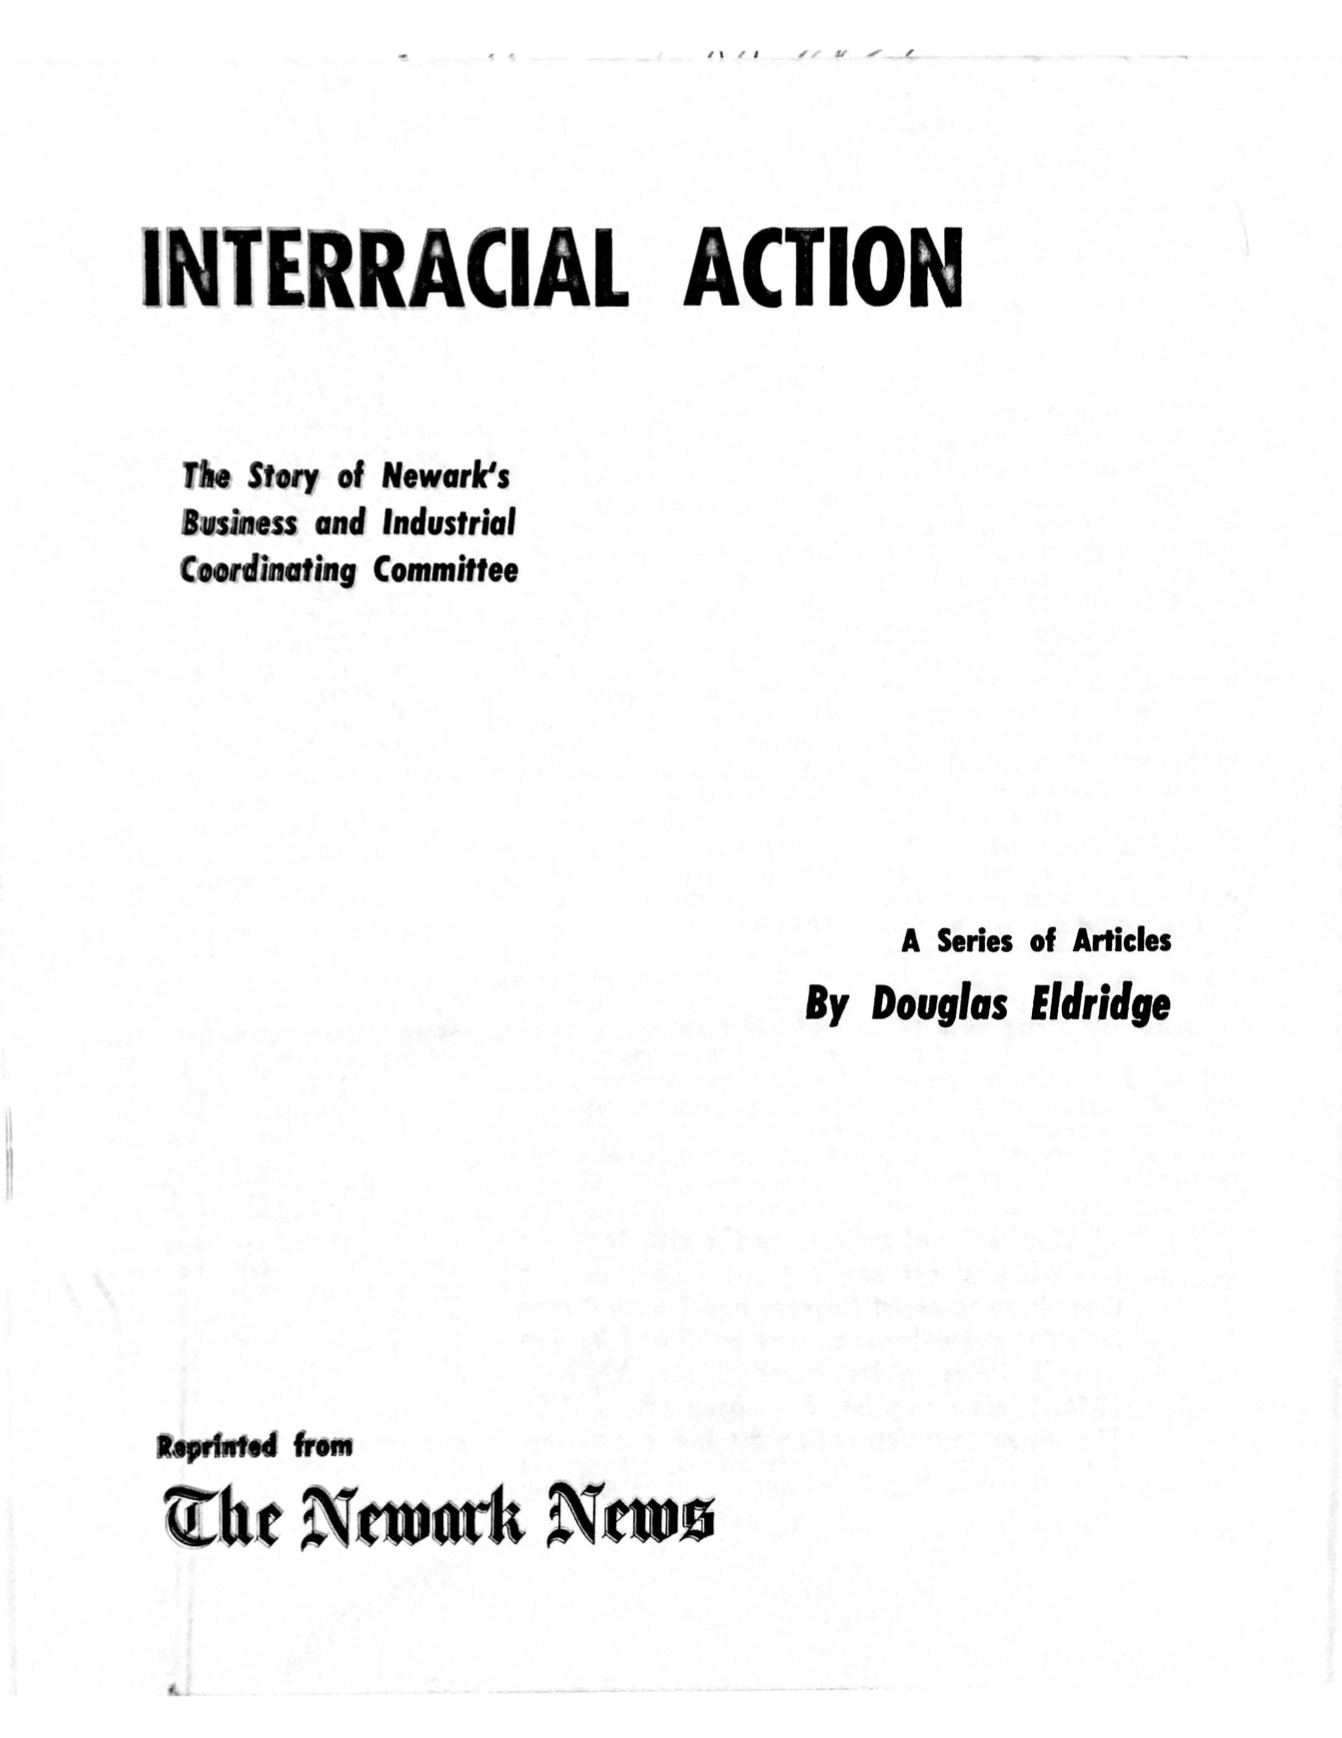 Interracial Action- The Story of Newark